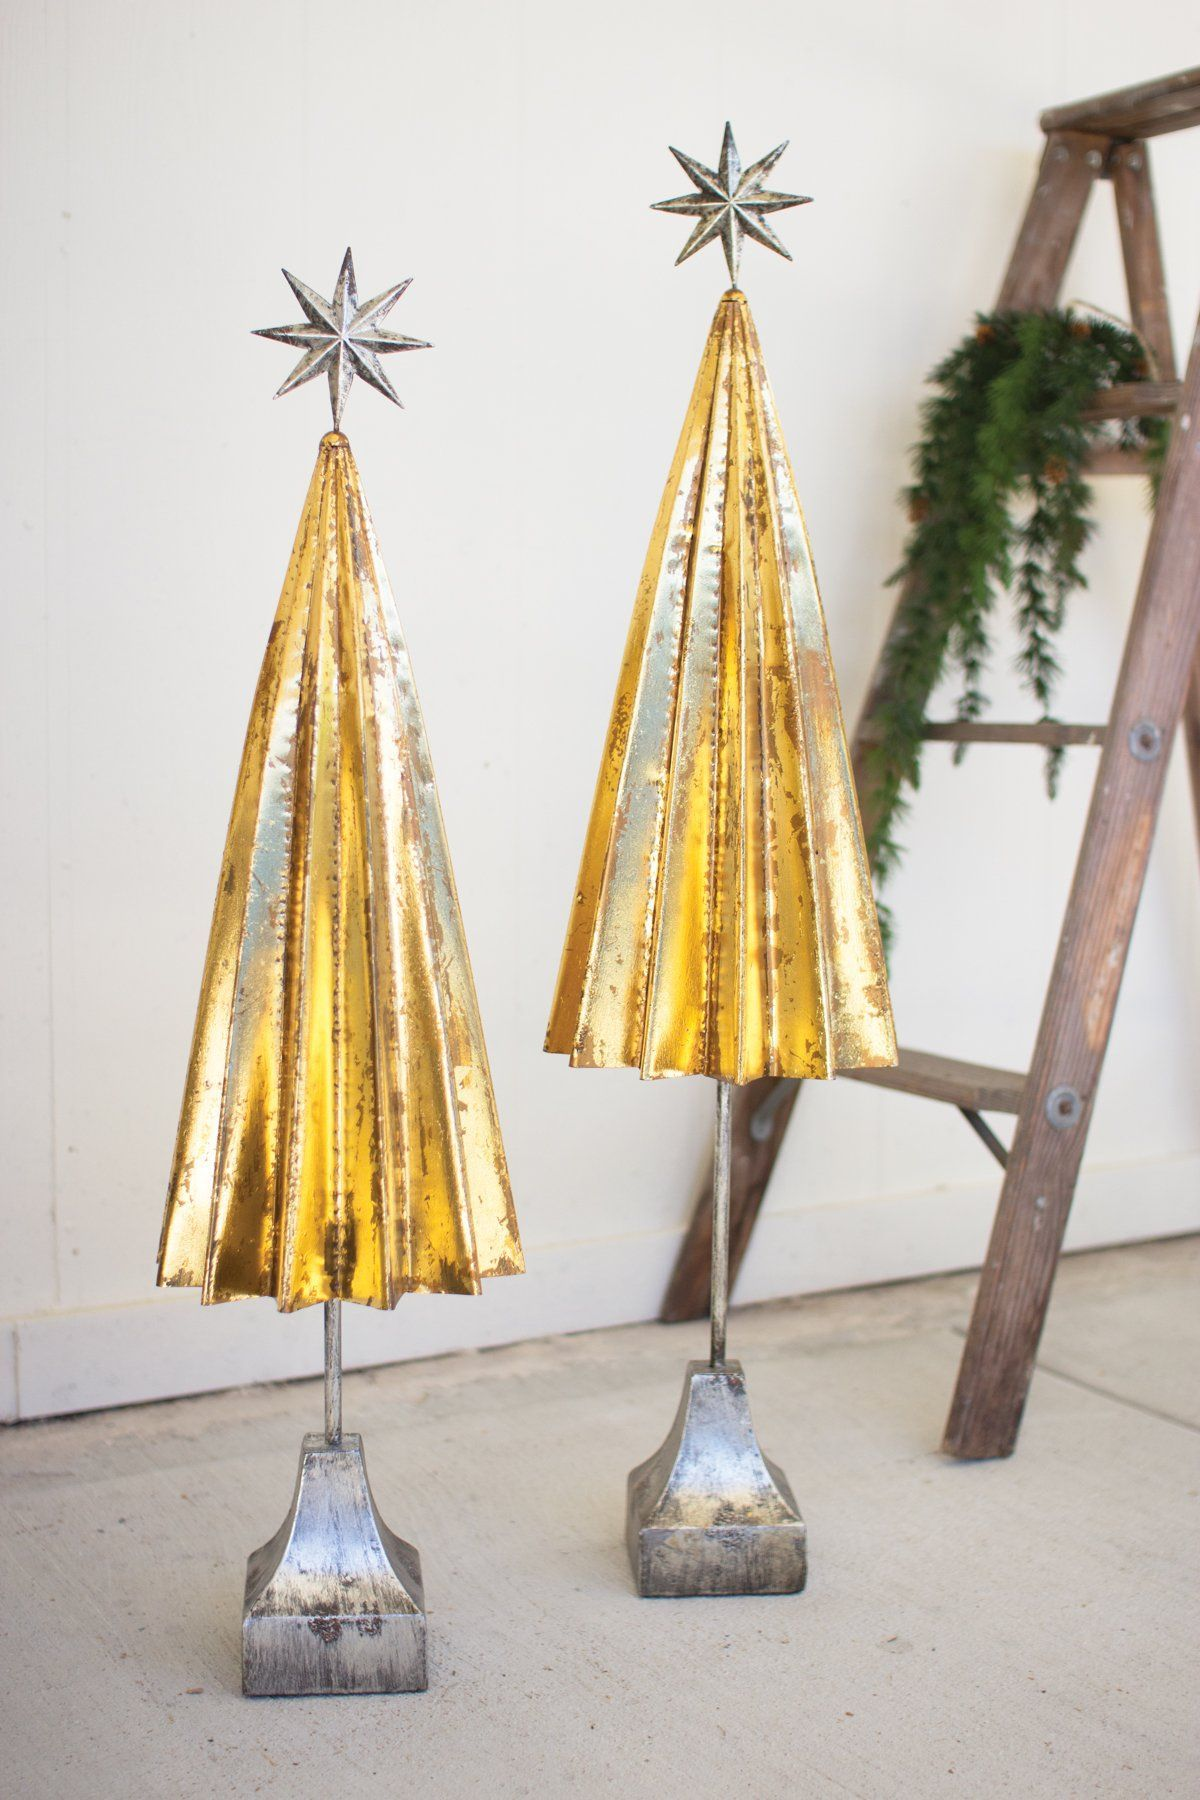 SET OF 2 FOLDED GOLD METAL TREES WITH SILVER STAR | metal tree art ...